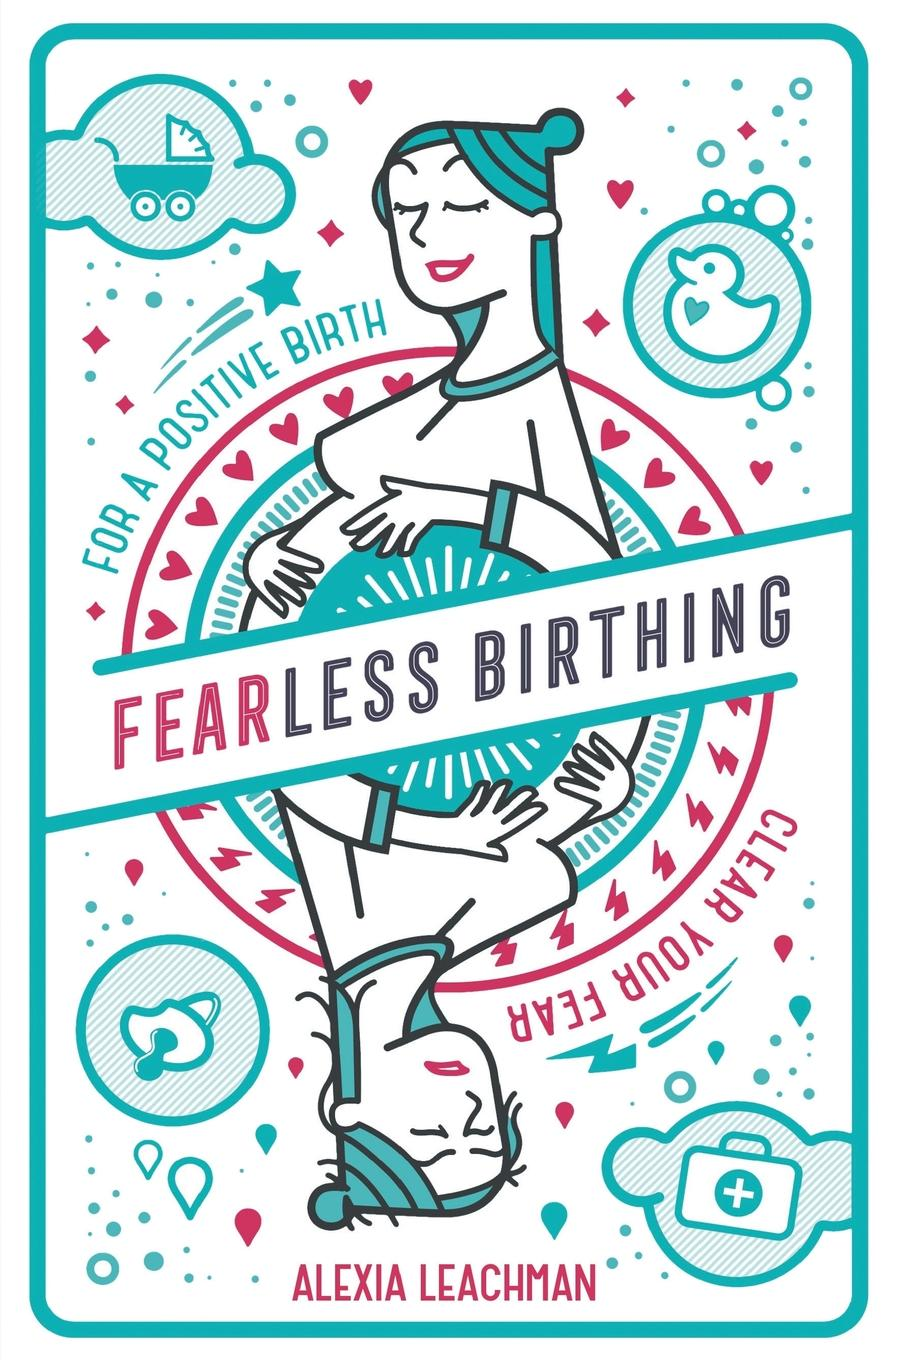 Alexia Leachman Fearless Birthing. Clear Your Fears For a Positive Birth все цены